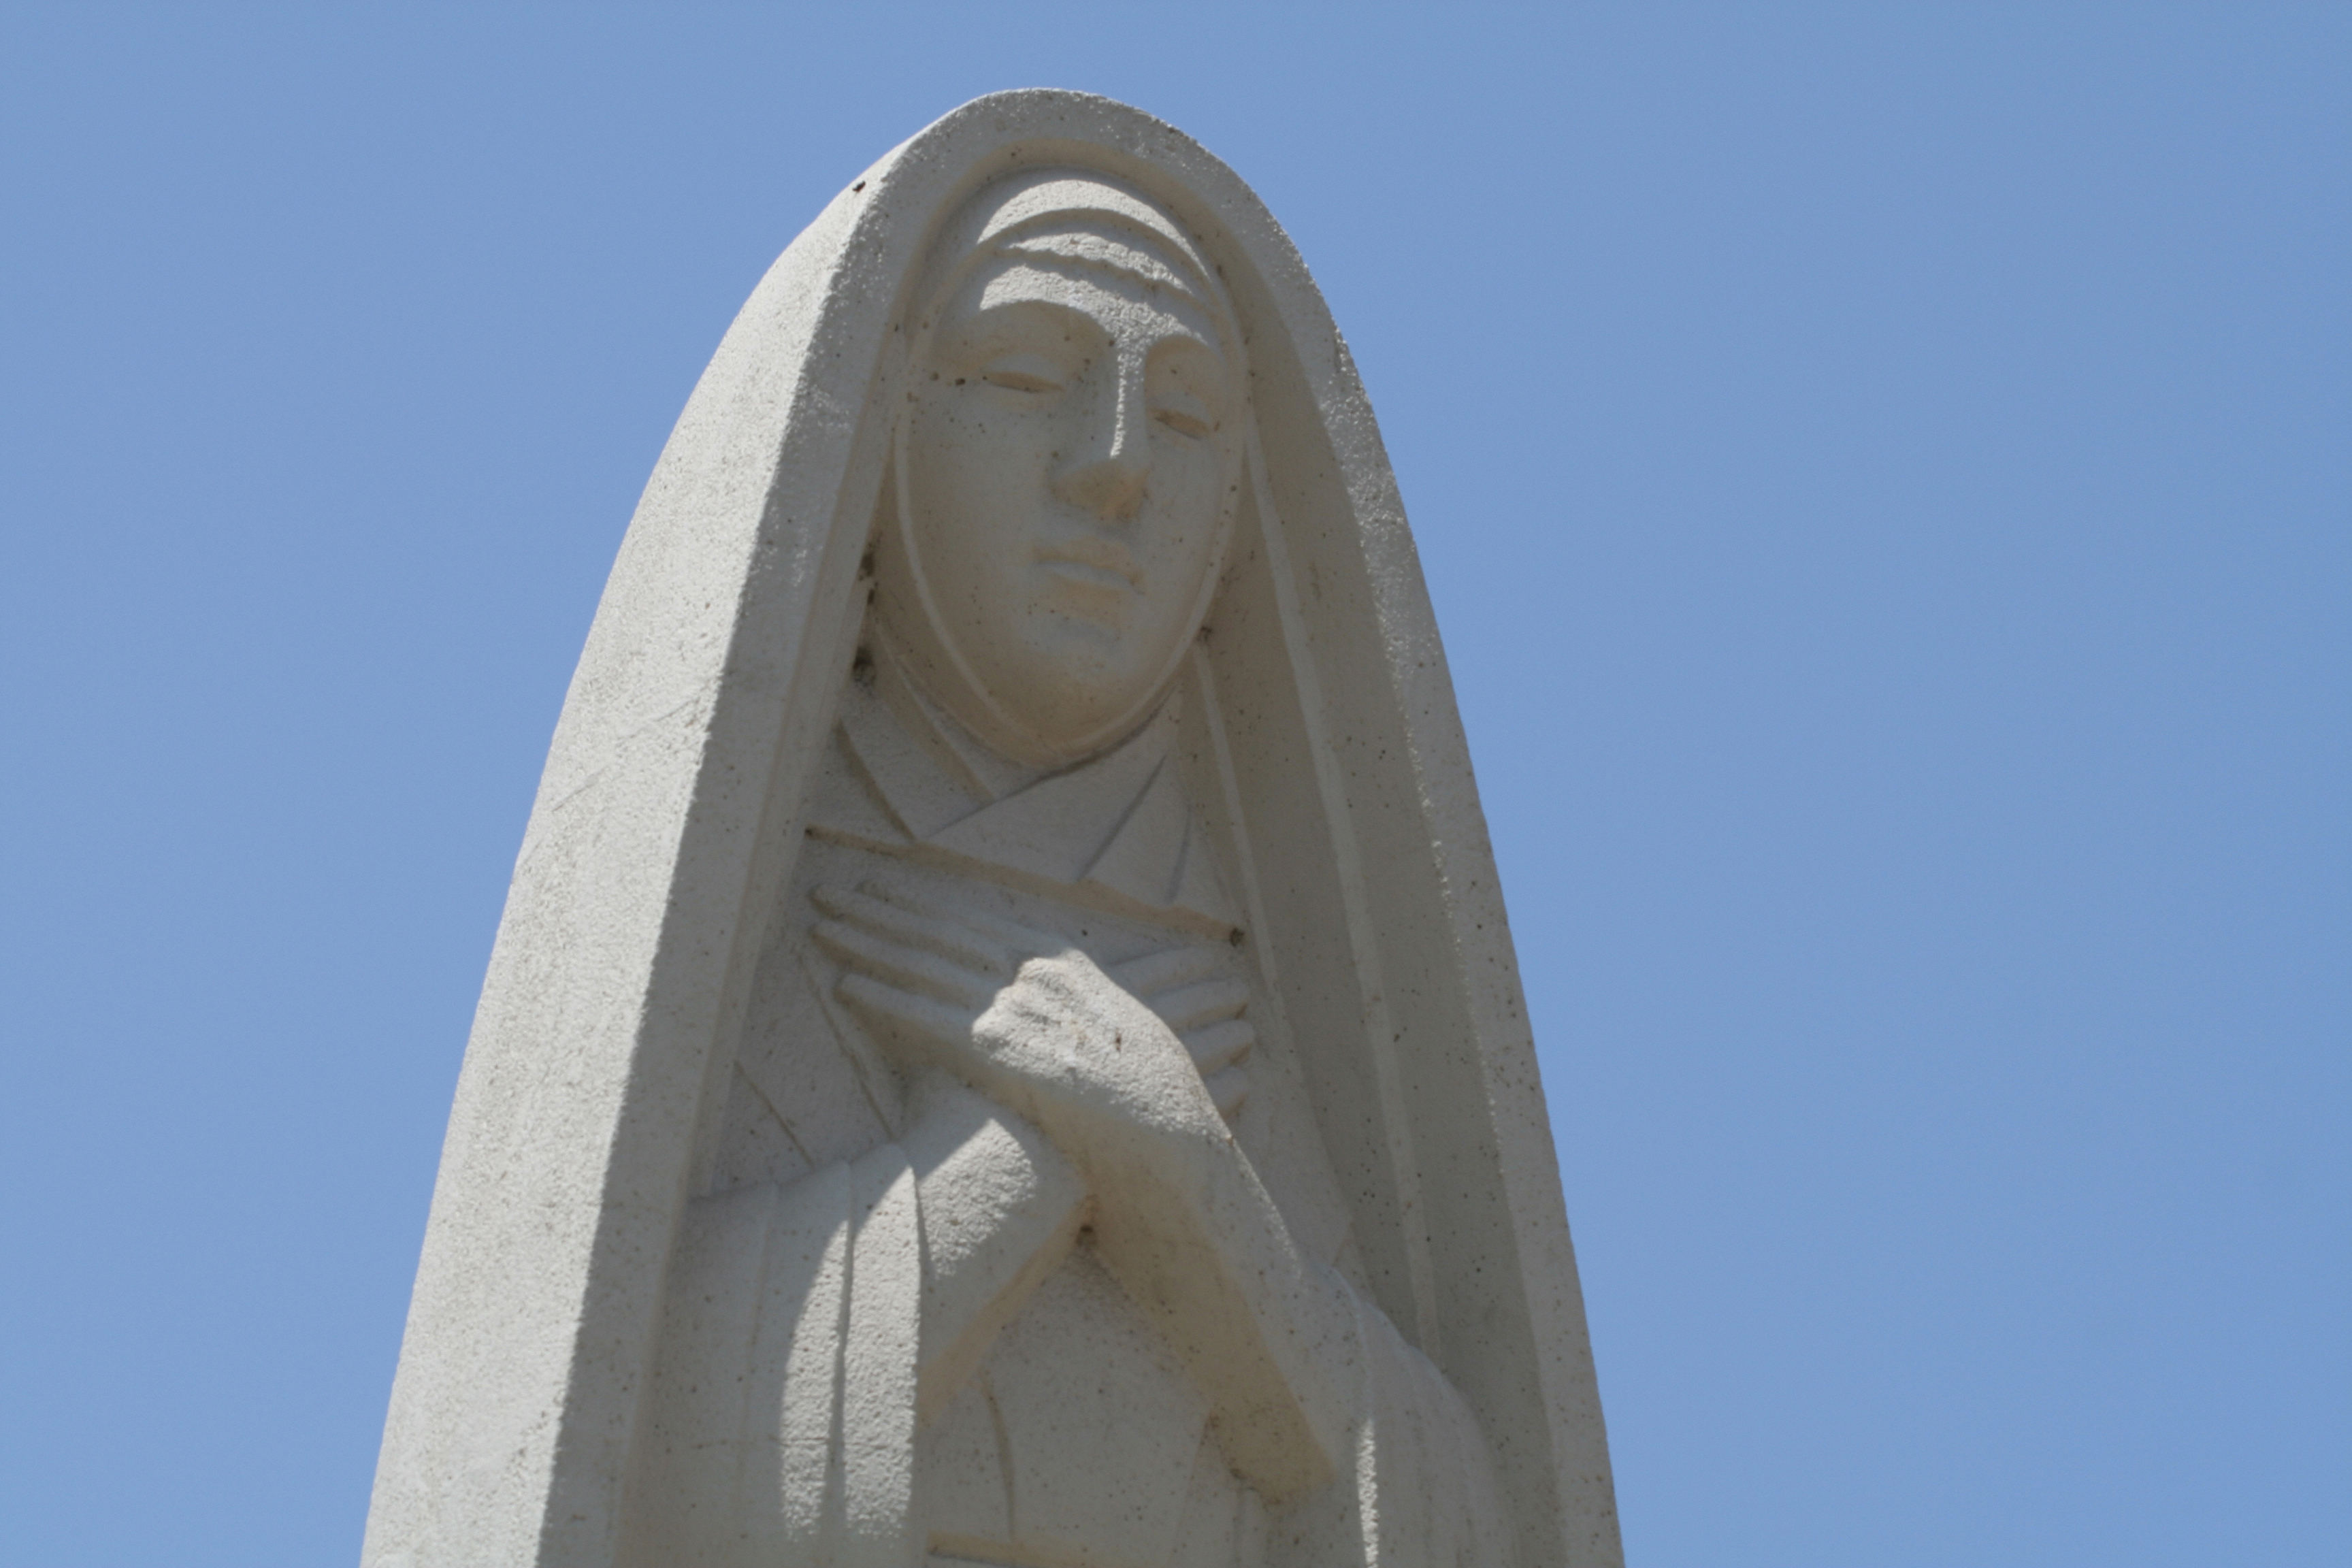 The art deco statue of Saint Monica  still stands in the city's public park